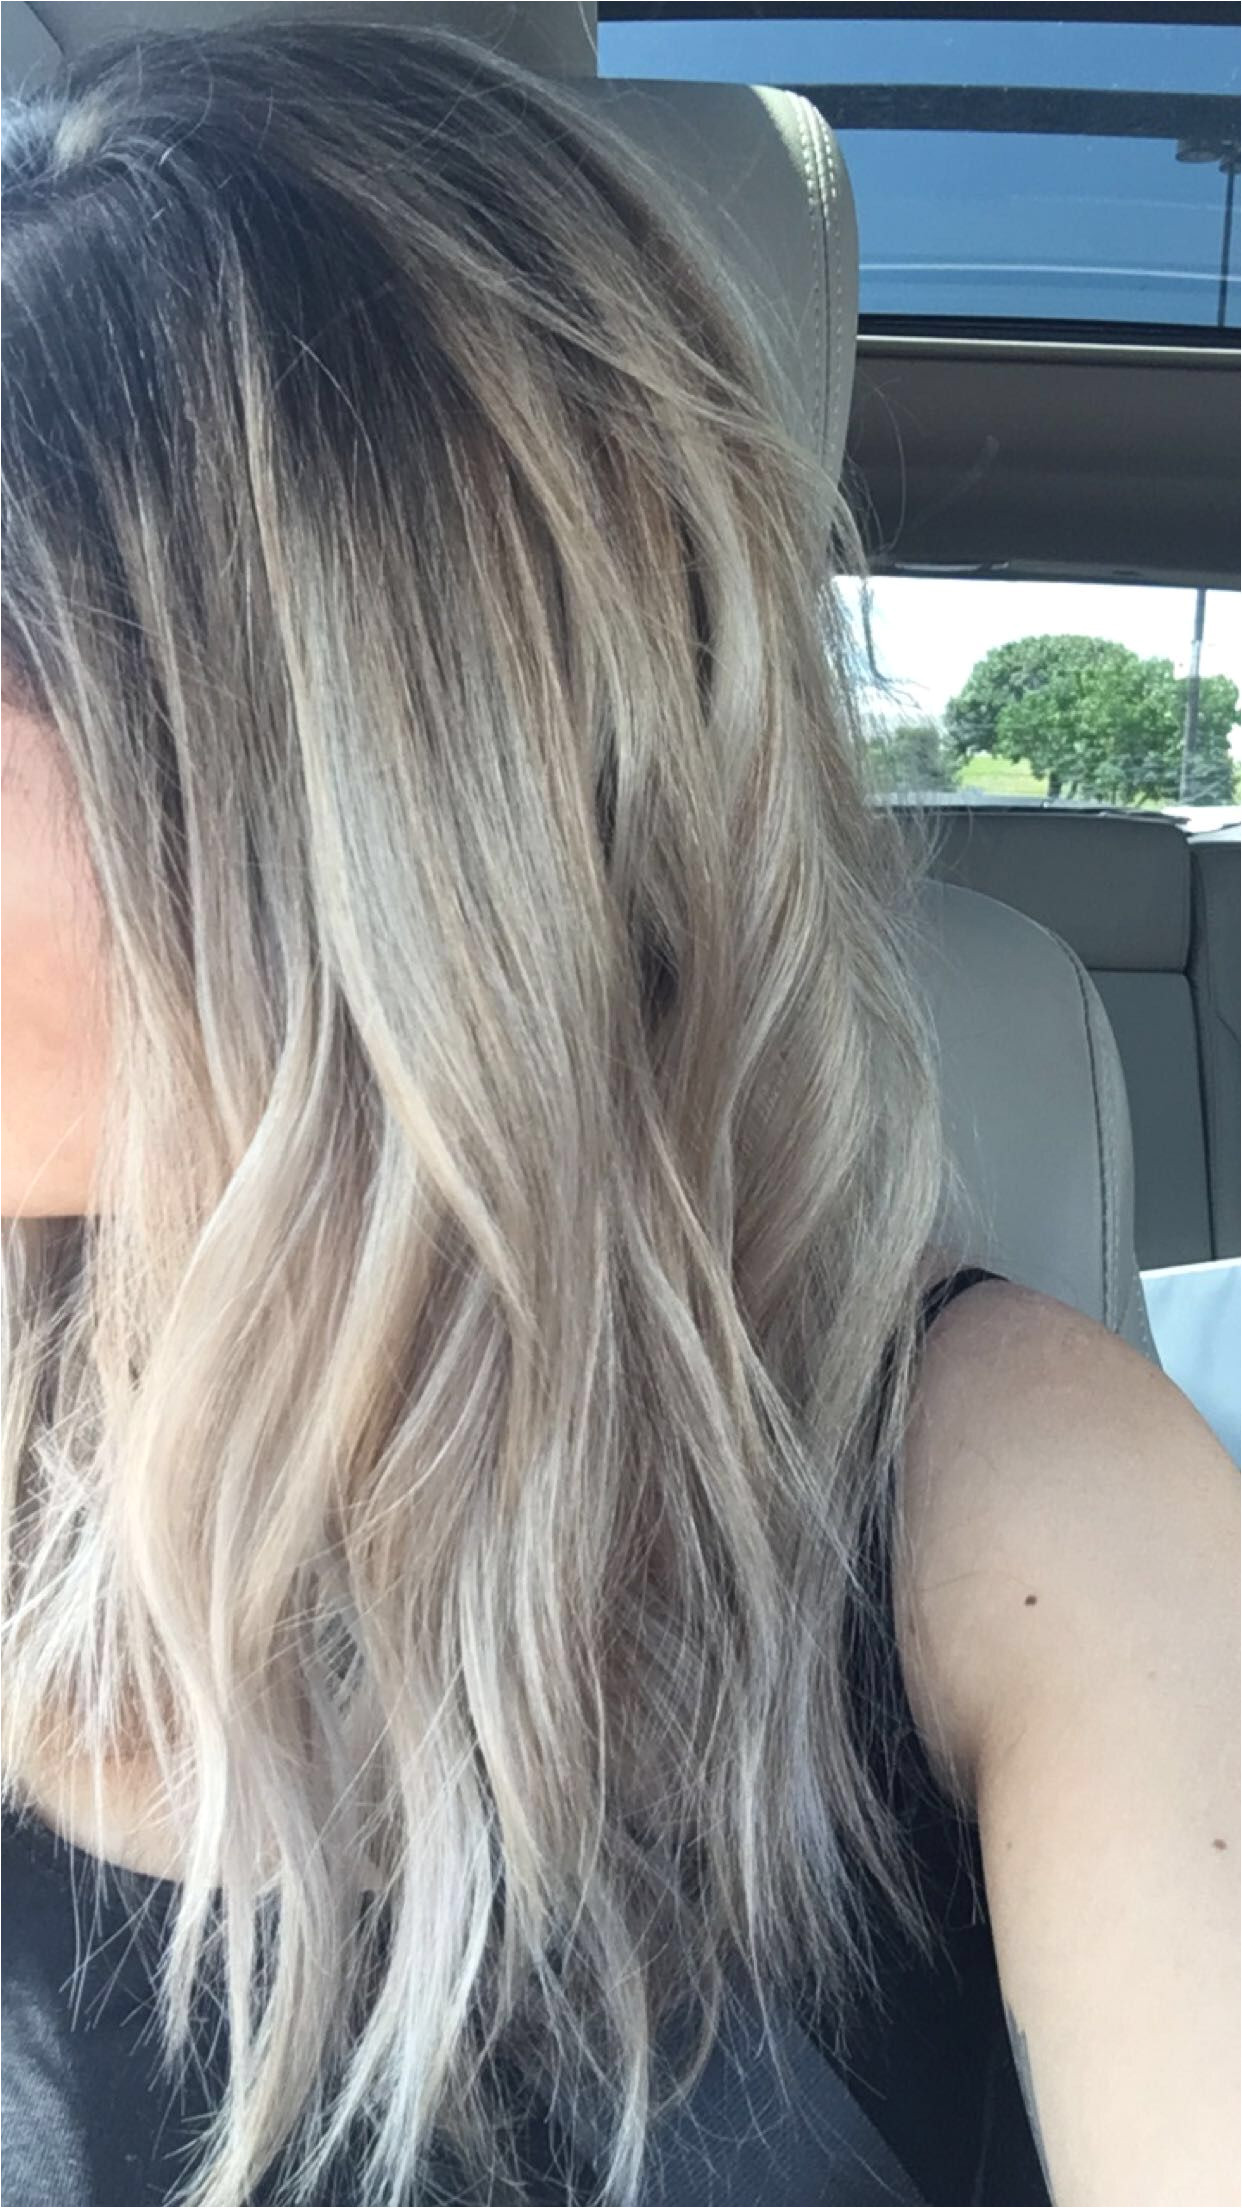 Blonde Hairstyles Dark Roots Blonde Hair Dark Roots Ombré Hair Pinterest